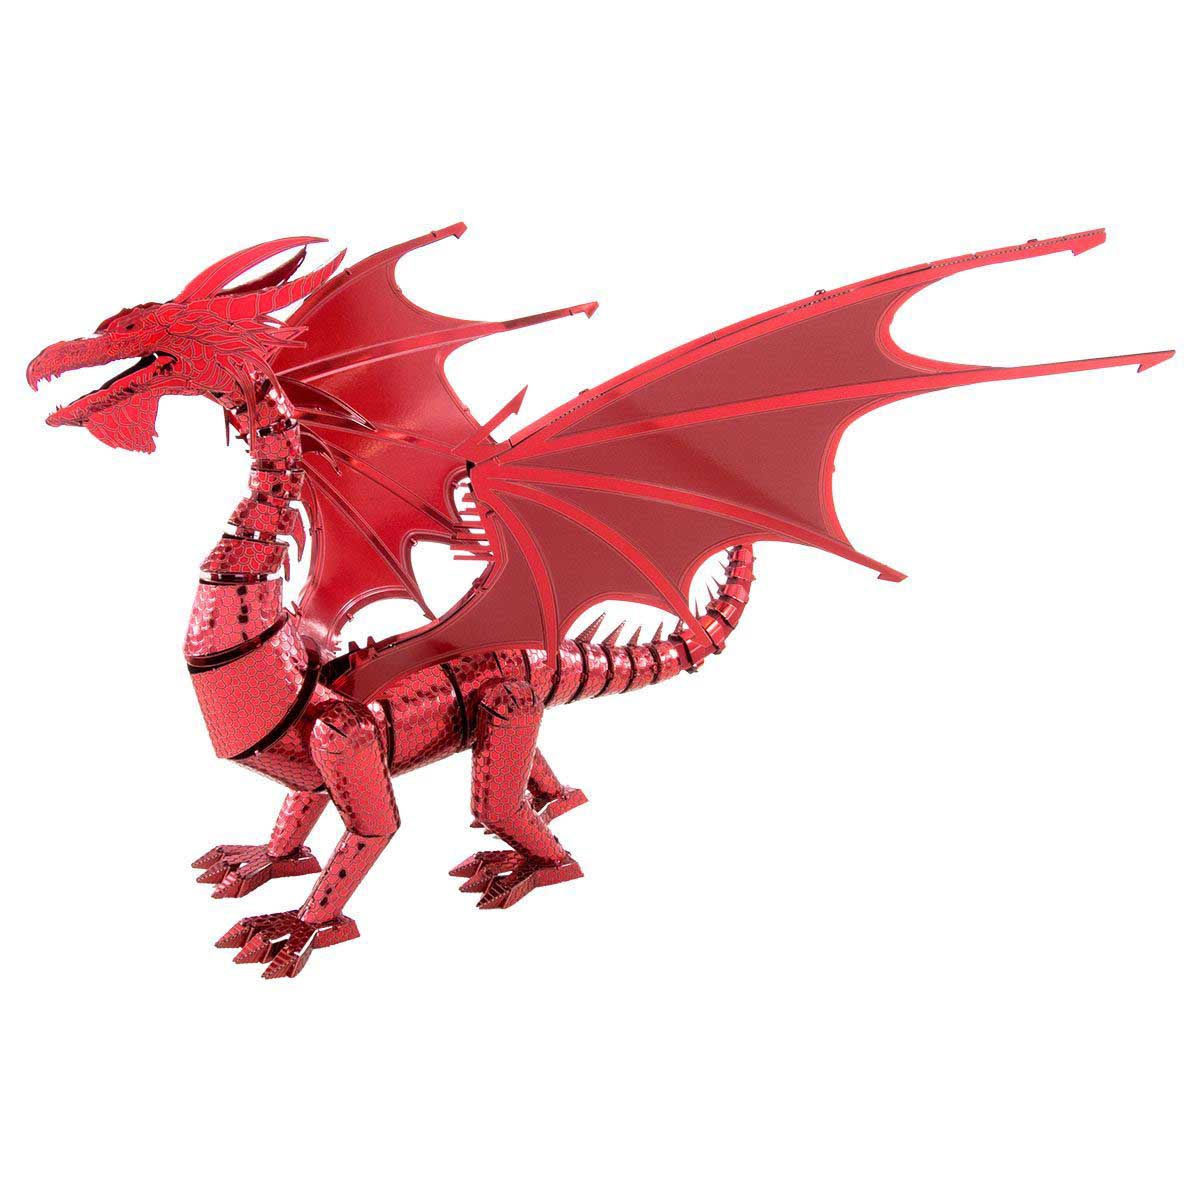 Red Dragon Dragons 3D Puzzle